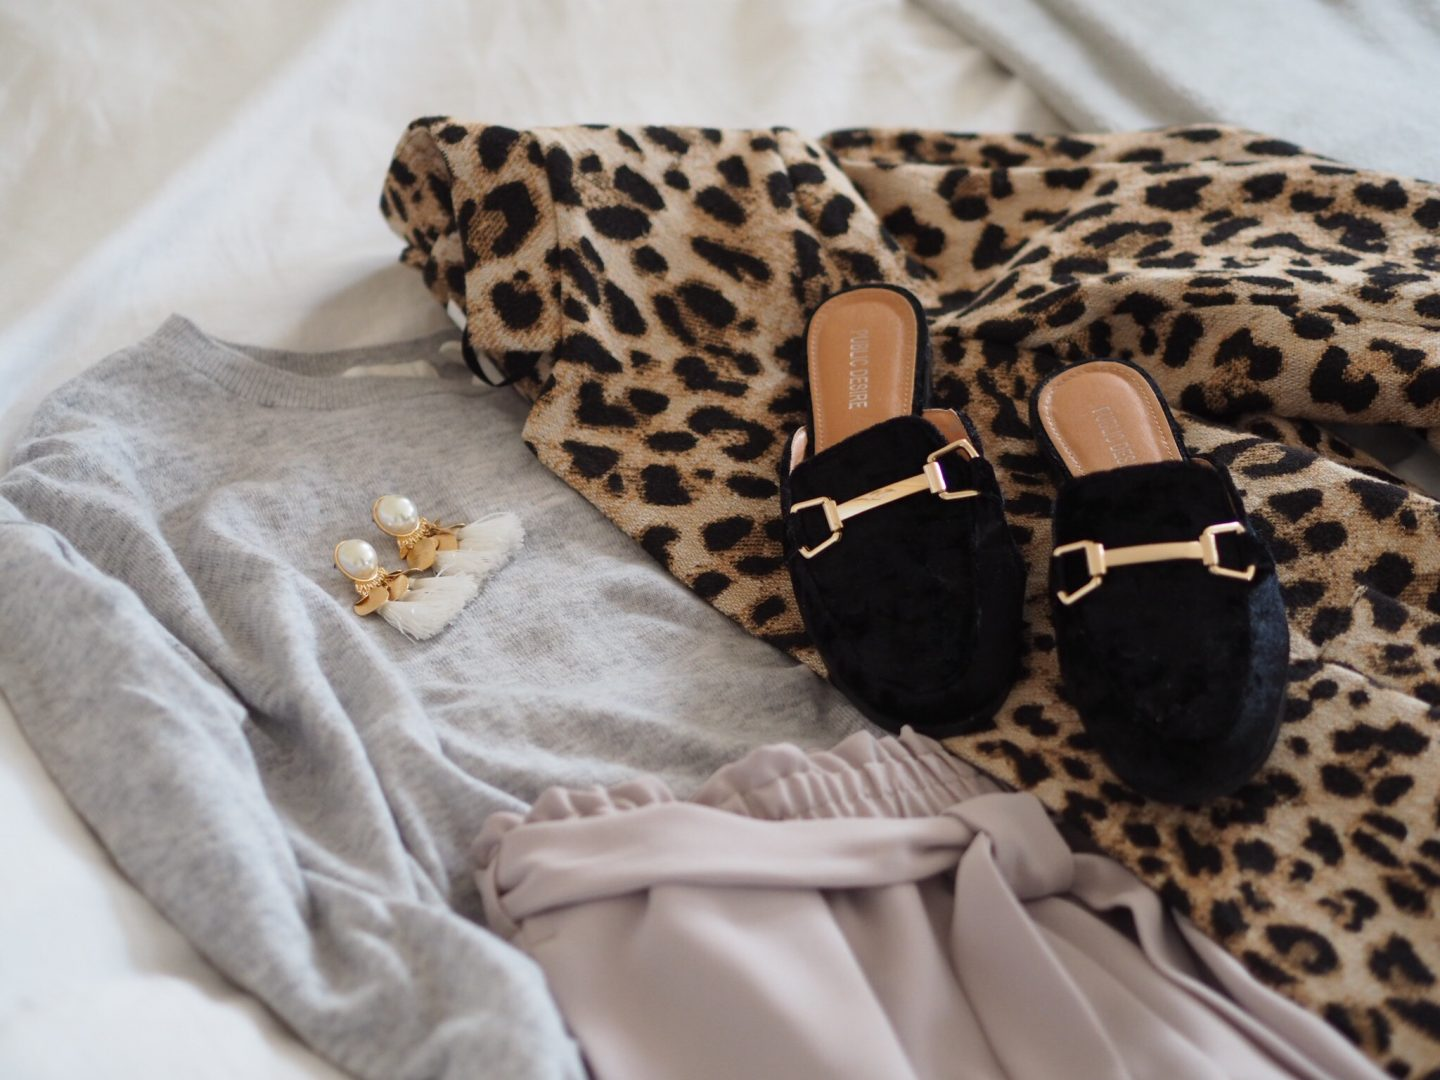 LAURA BYRNES, lauras little locket, london fashion week outfit, leopard print coat